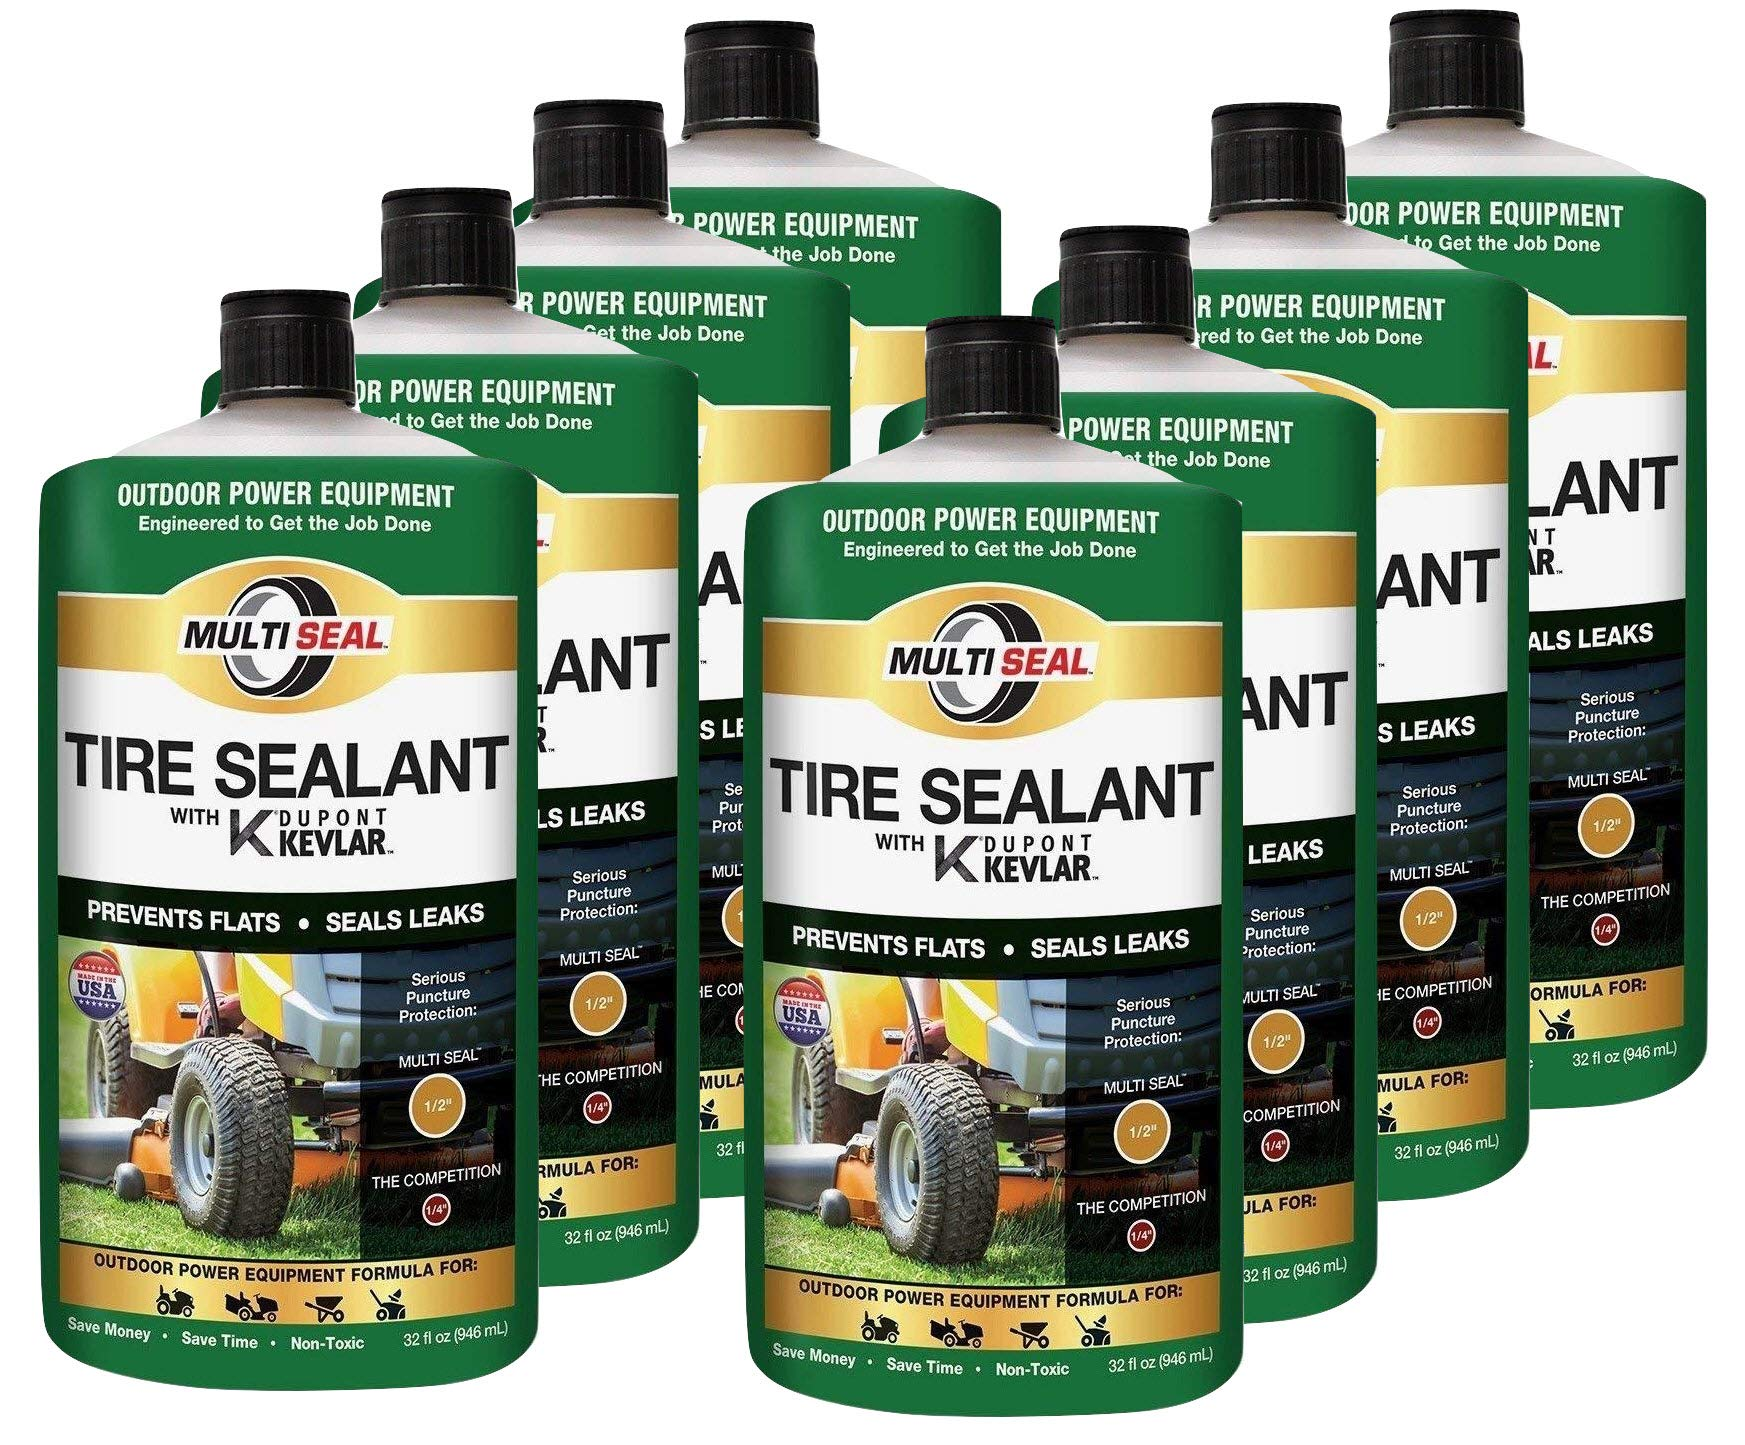 MULTI SEAL 20128 Tire Sealant with Kevlar (Outdoor Power Equipment Formula), Great for Lawn Mowers, Small Tractors, Wheelbarrows, Wood Chippers, Snow Blowers and more, 8-Pack (256 oz.)